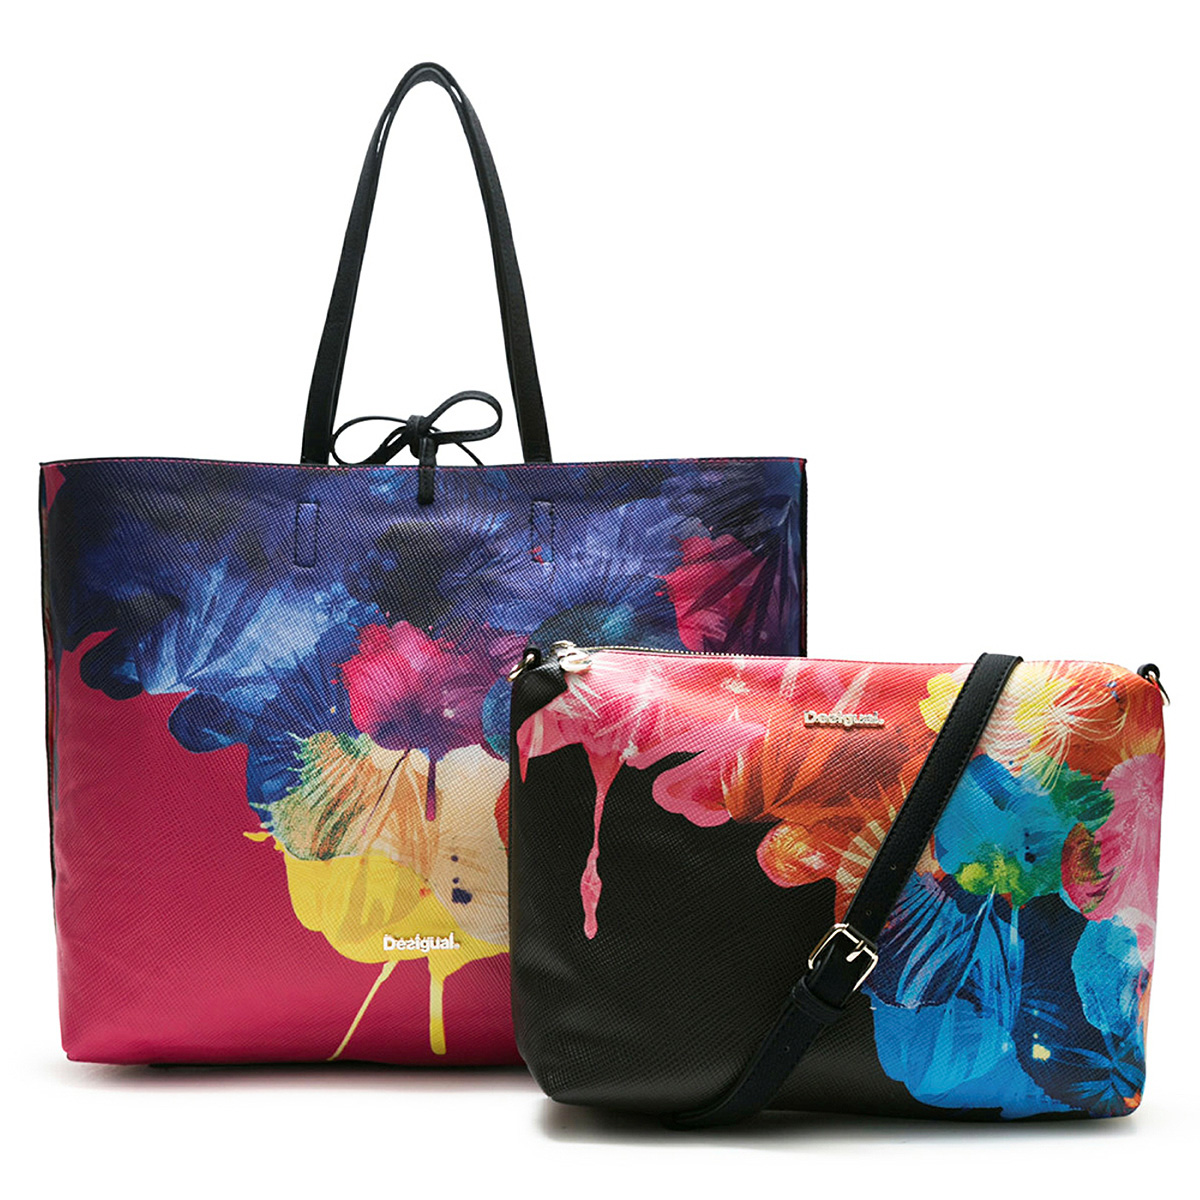 Desigual 3 in 1 Wendetasche Shopper Bols Corel Seattle 18SAXP46/2000